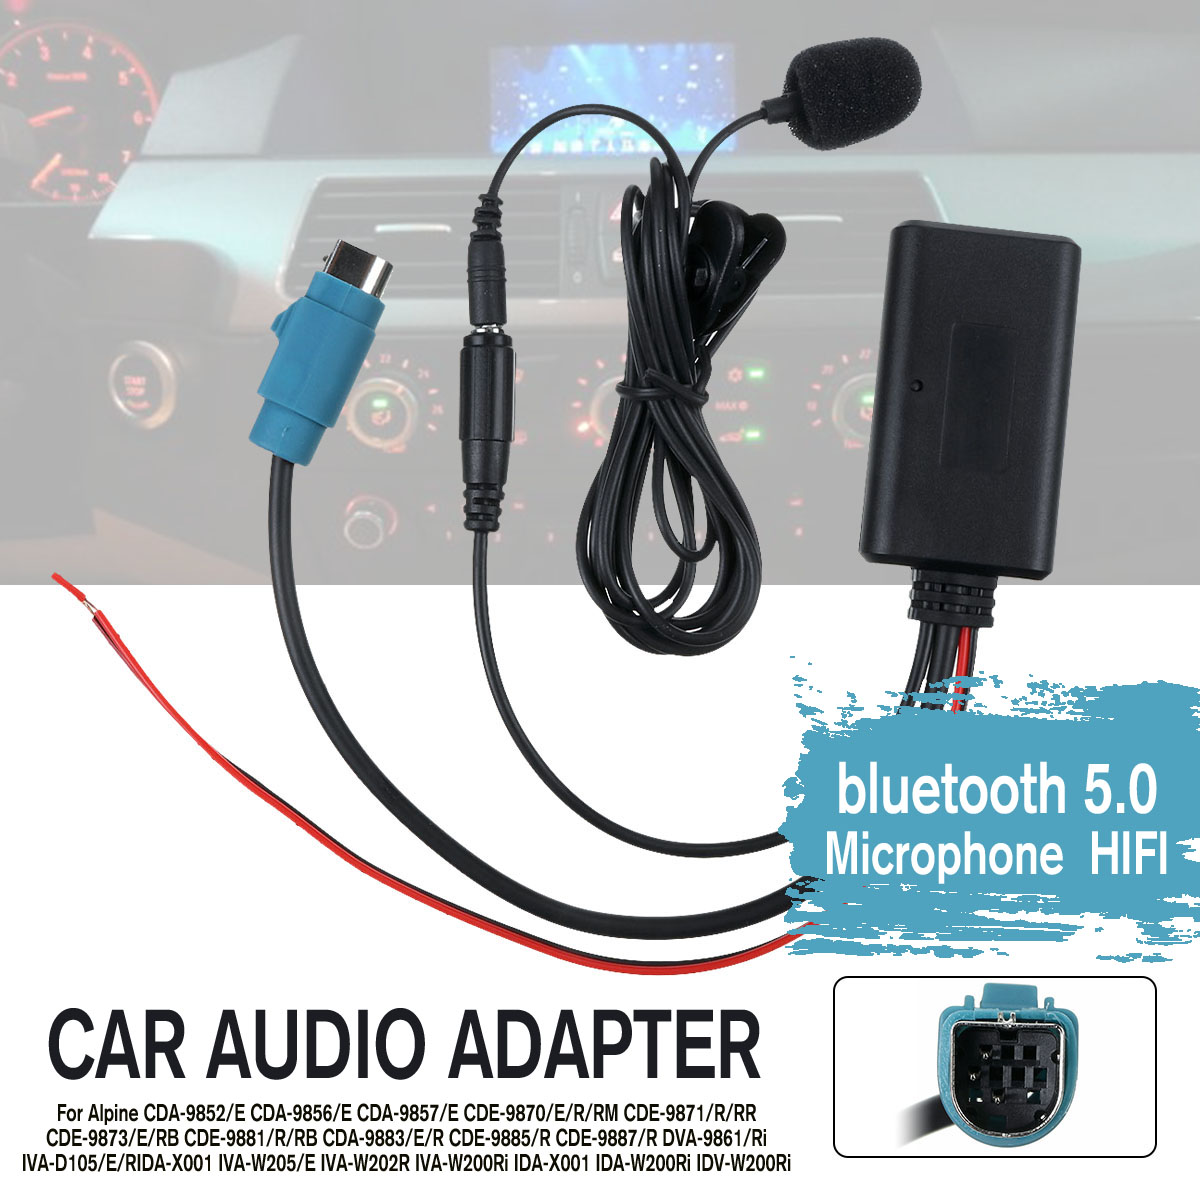 Car Audio Bluetooth Wireless Cable Adapter Microphone MIC AUX Music Player Handsfree For Alpine CD Host KCE-236B 9870/9872